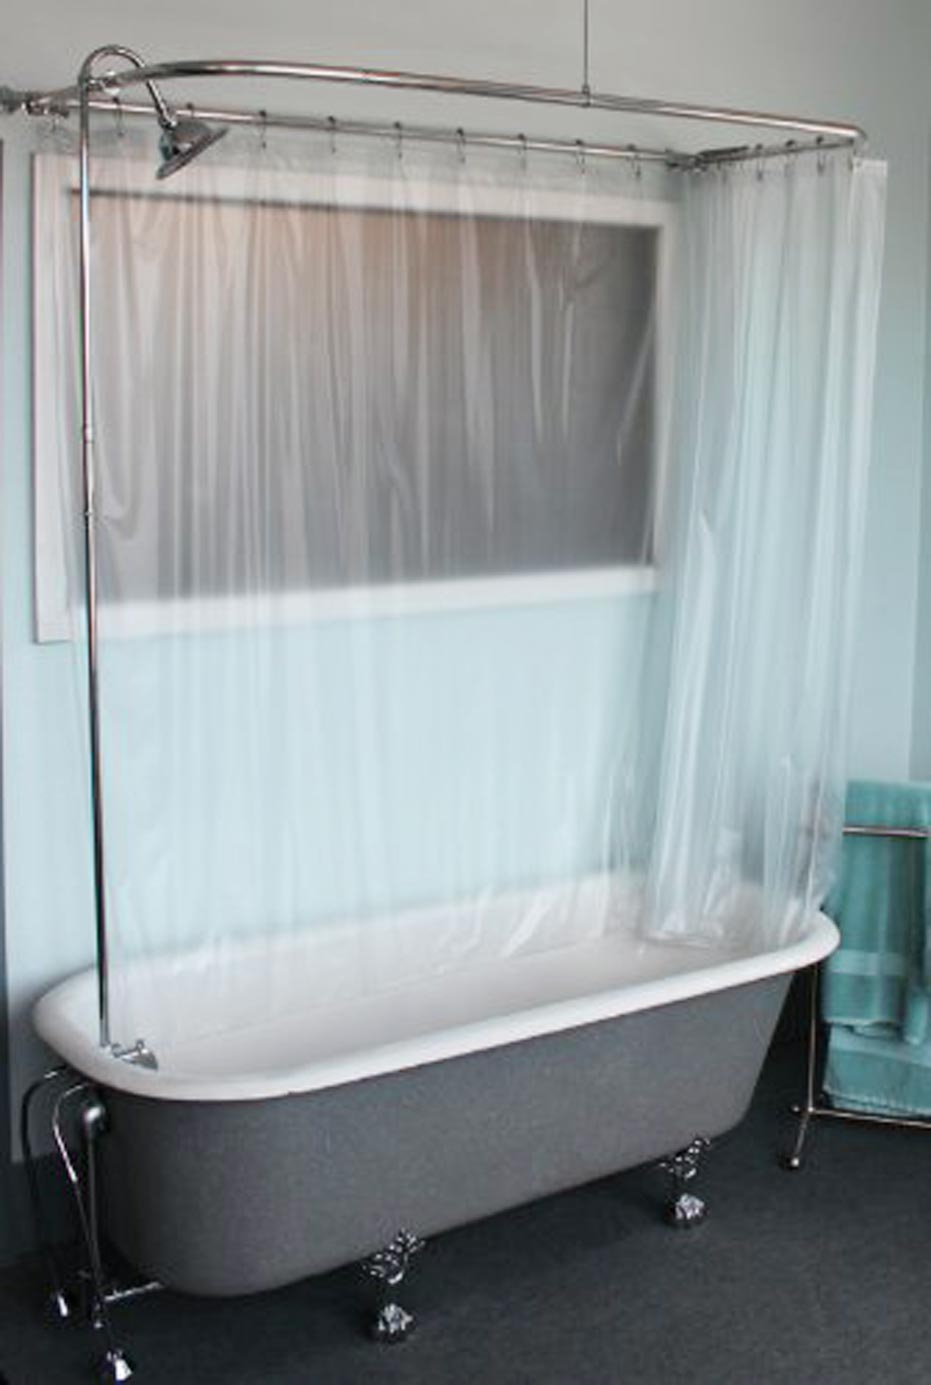 Ceiling Mounted Clawfoot Tub Shower Curtain Scheduleaplane intended for size 931 X 1385